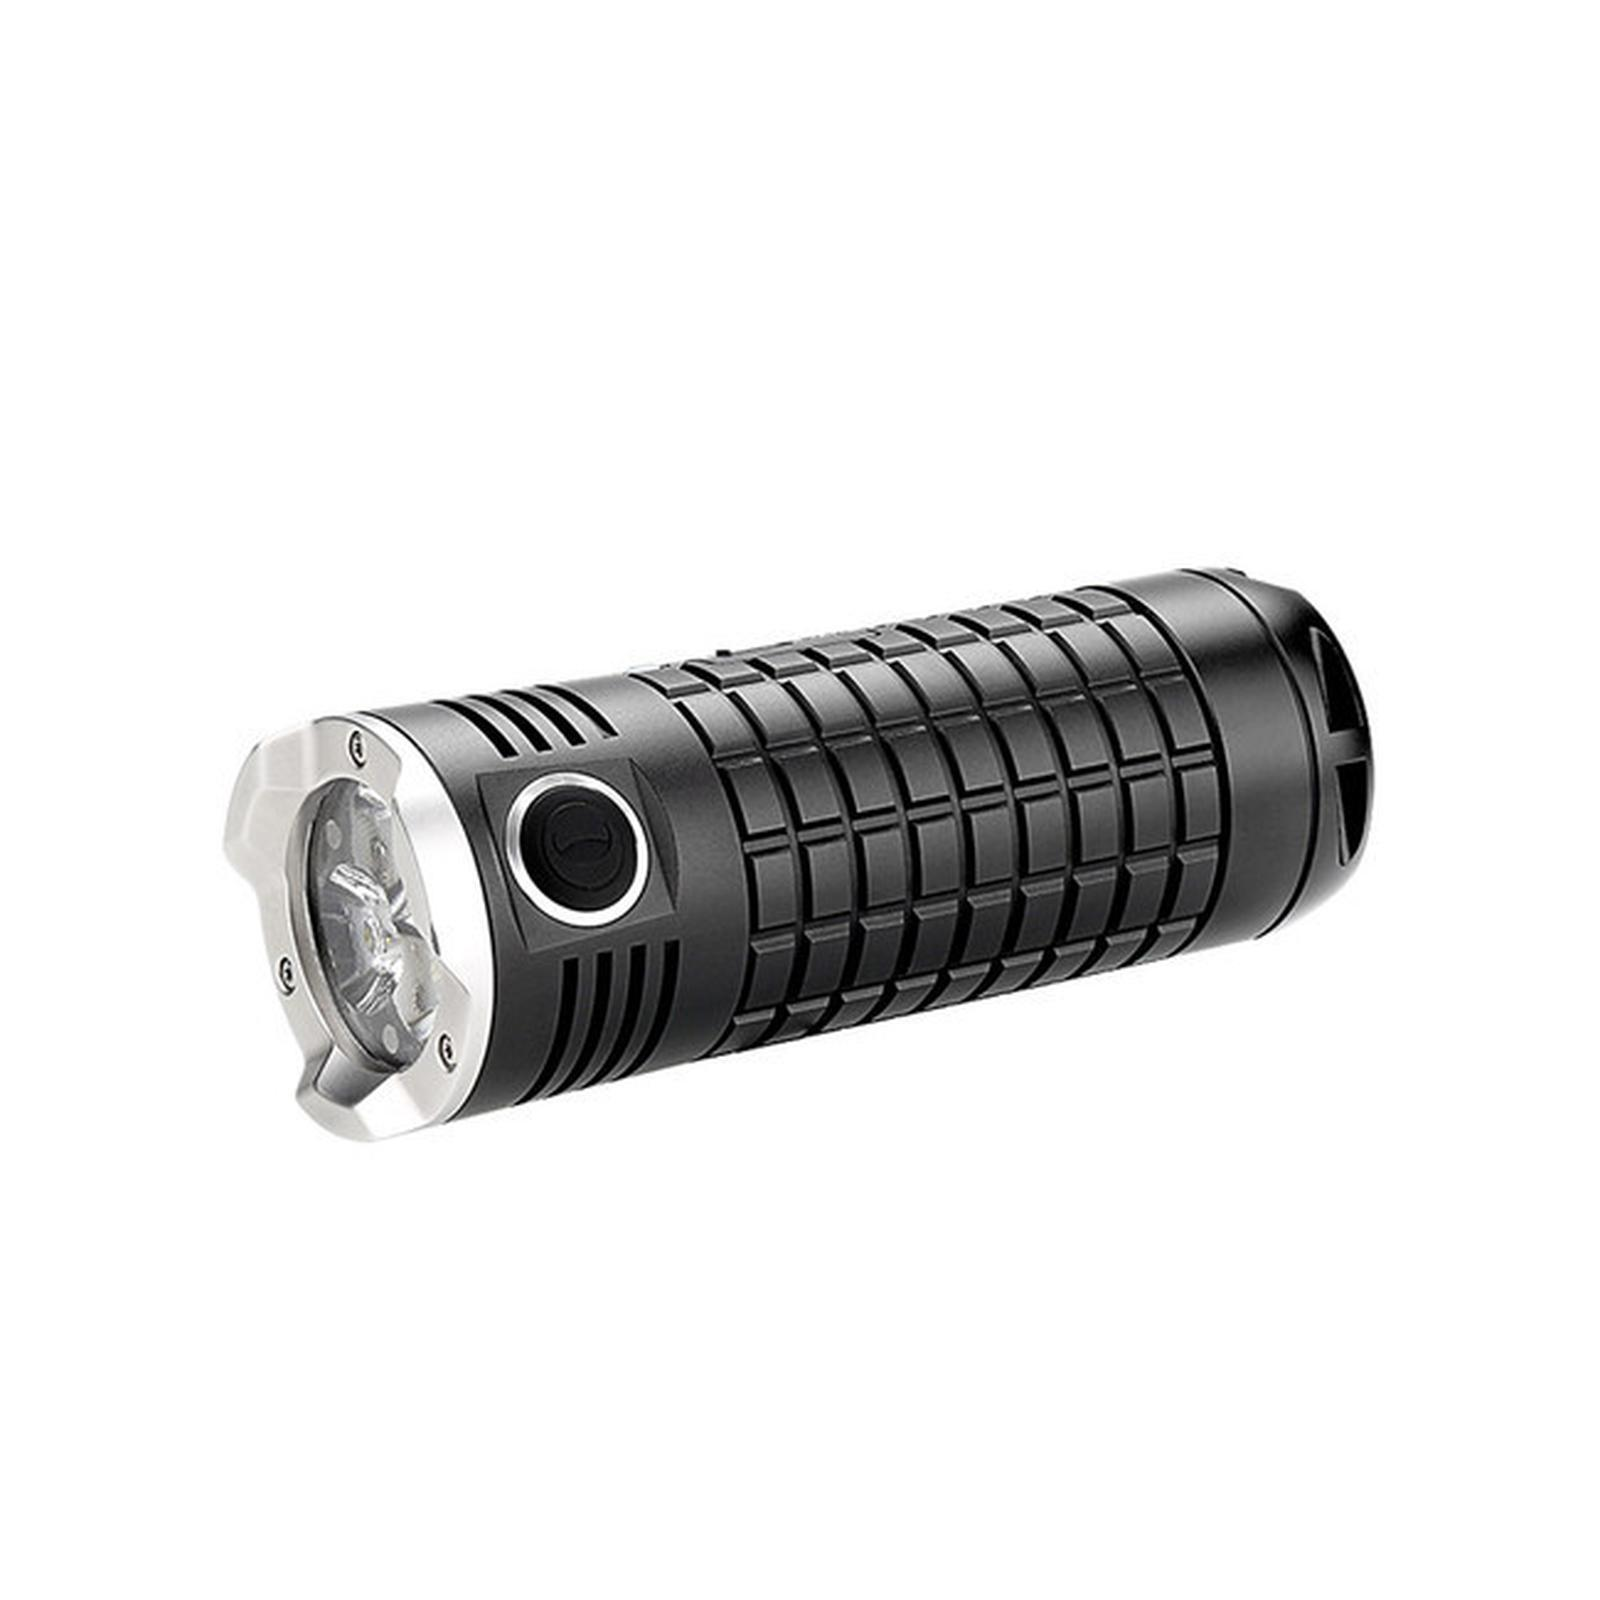 Фонарь Olight SR Mini II Intimidator (USB зарядка) фонарь olight i3t eos